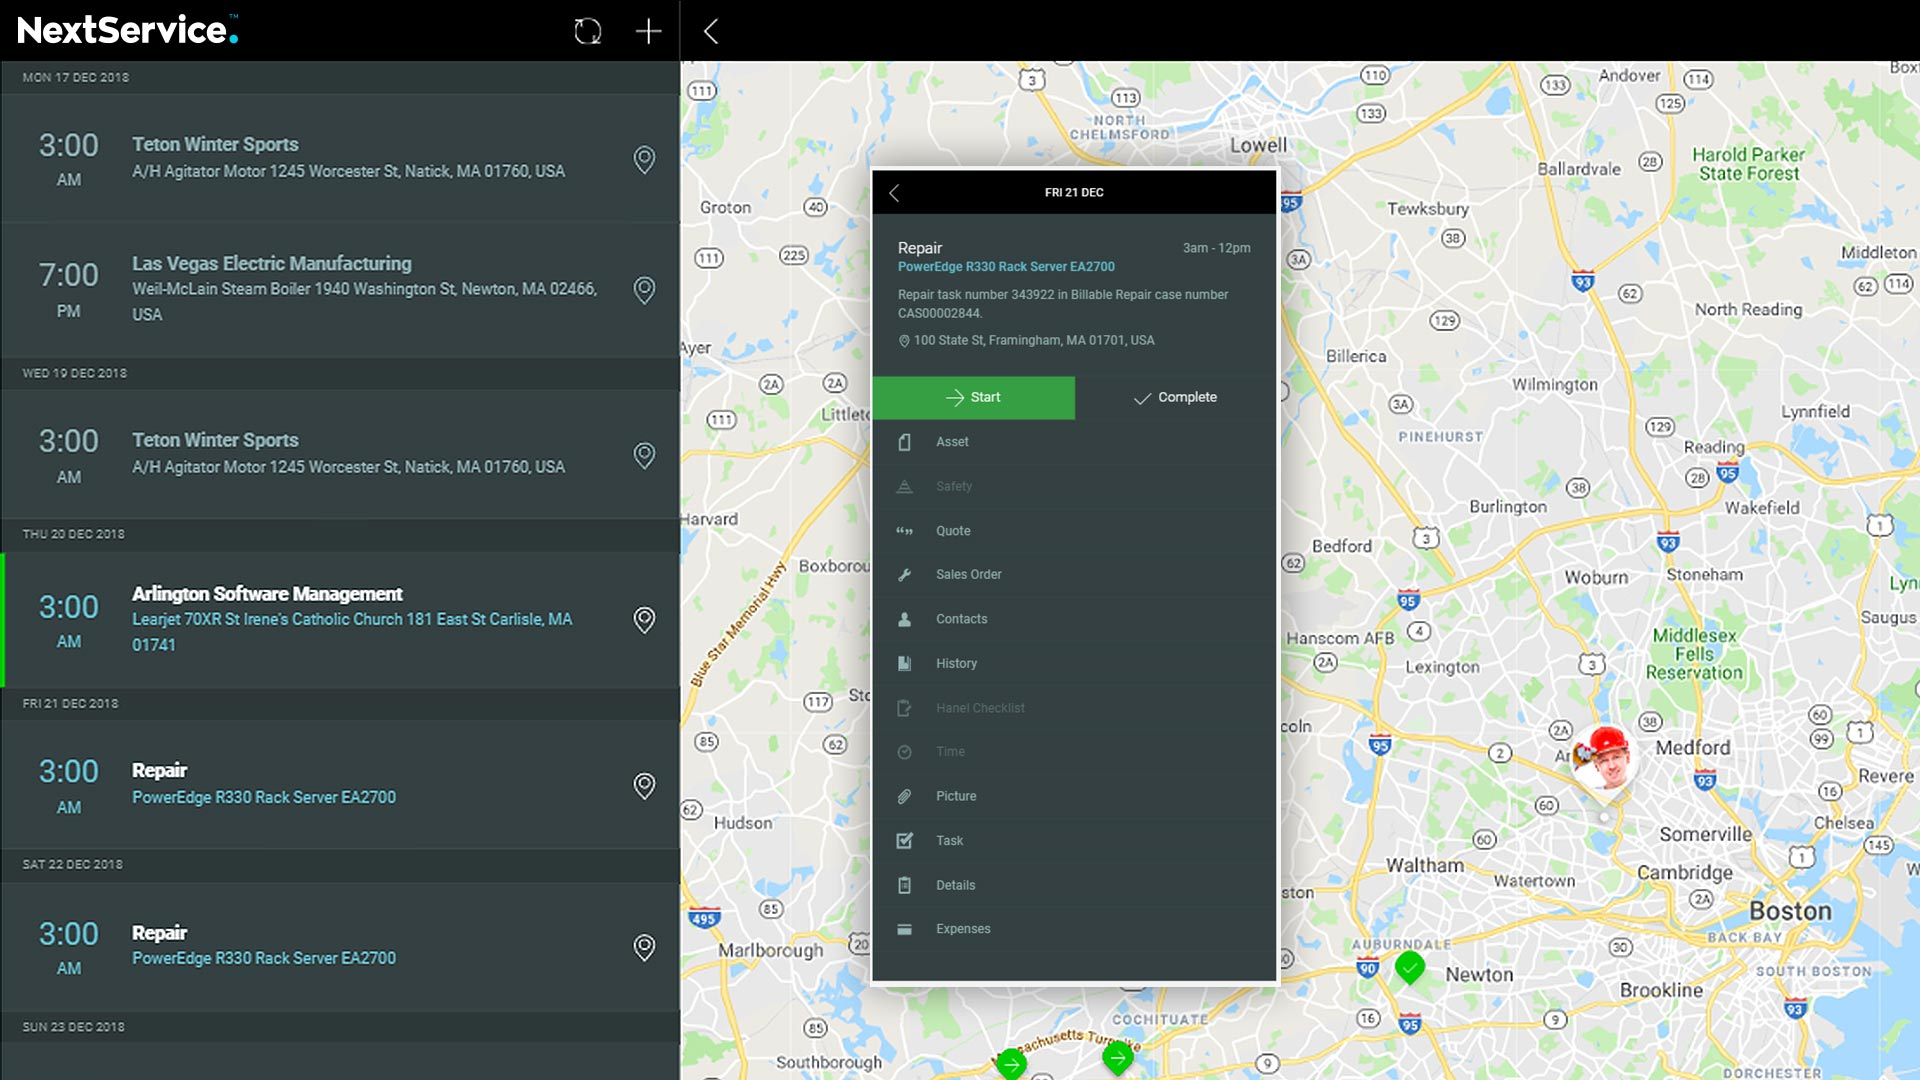 NextService App for tablets and mobile devices enables the technician for better customer service.